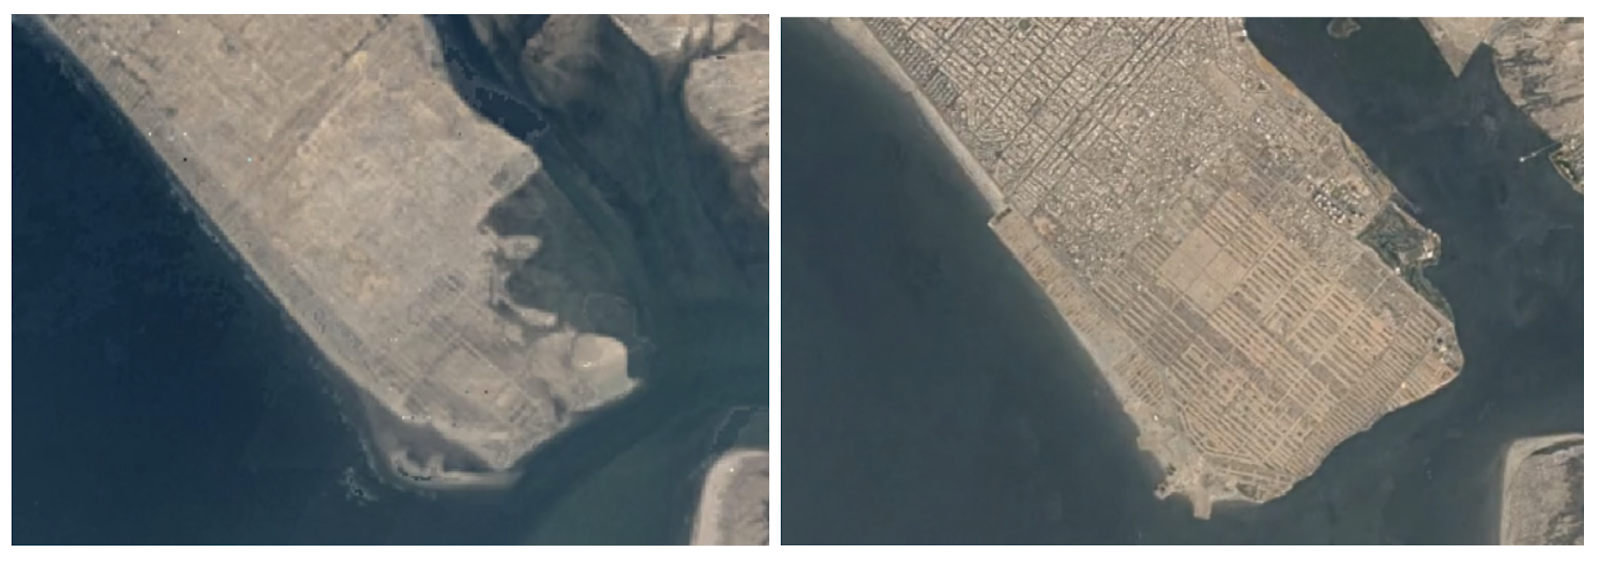 Satellite imagery of DHA Phase-VIII in 1984 and 2018, showing the extent of land reclamation within the area | Courtesy Marvi Mazhar and Associates